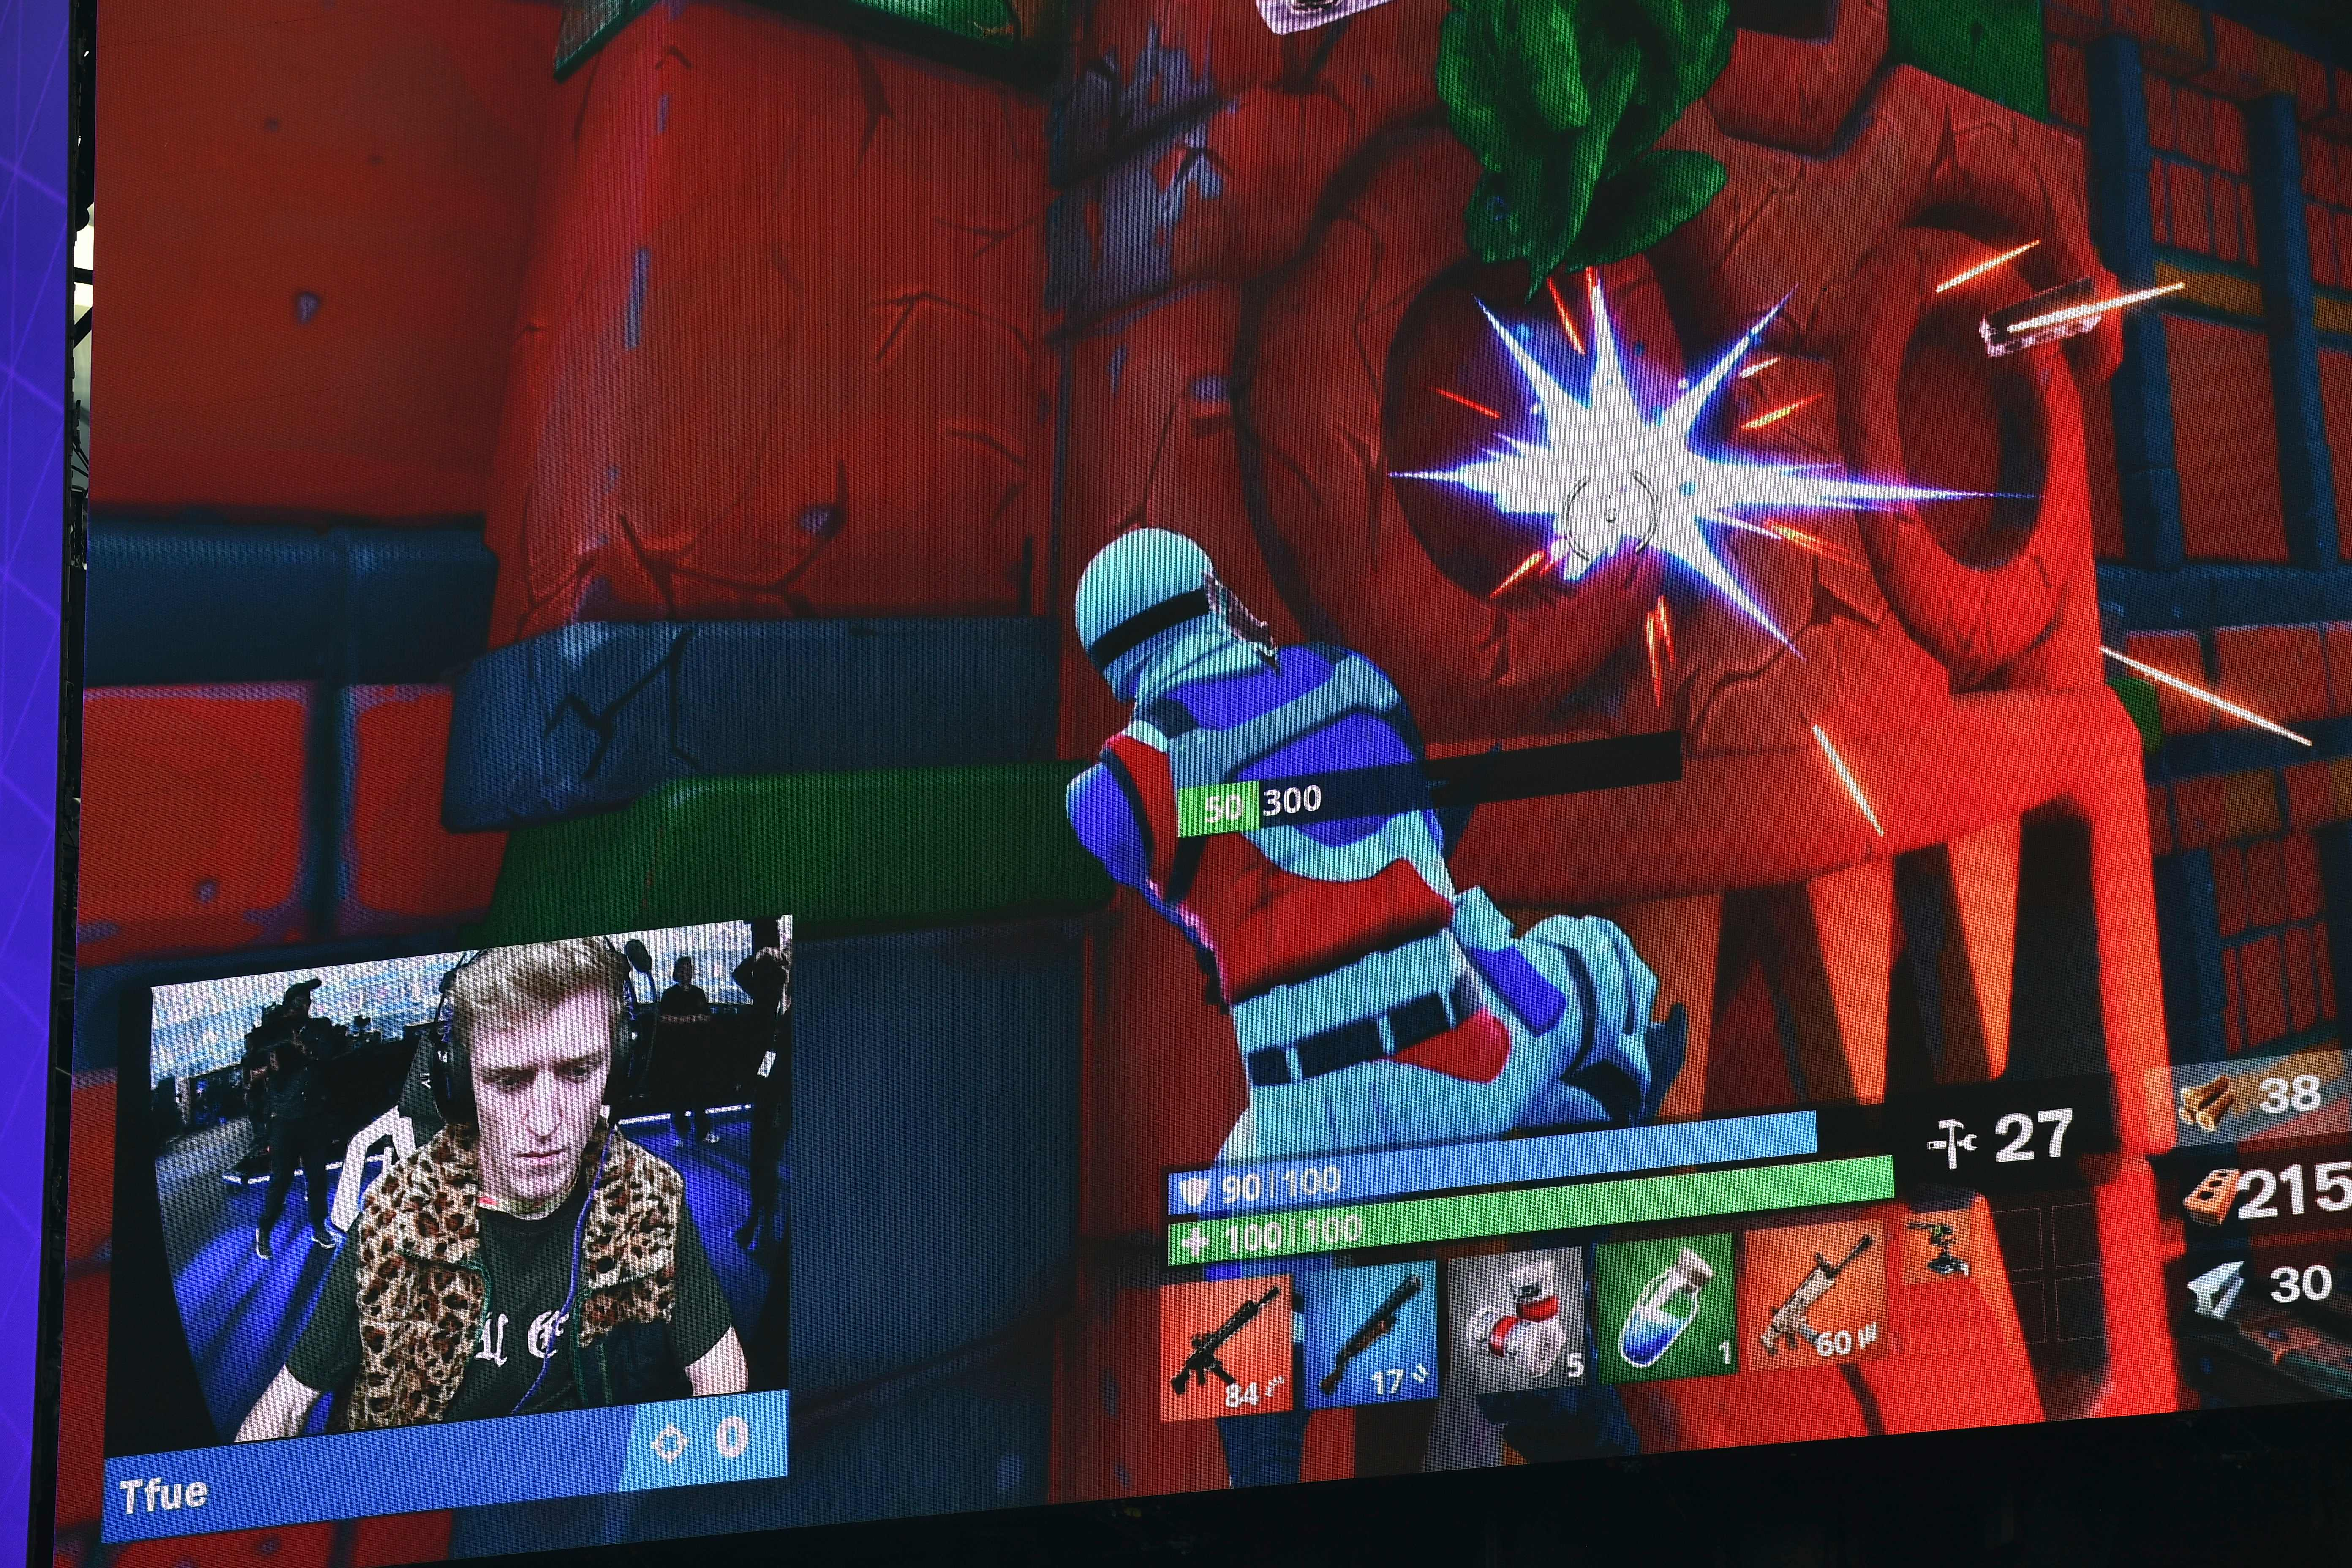 'A game of chicken': How much Fortnite's risky gambit could end up costing Apple thumbnail